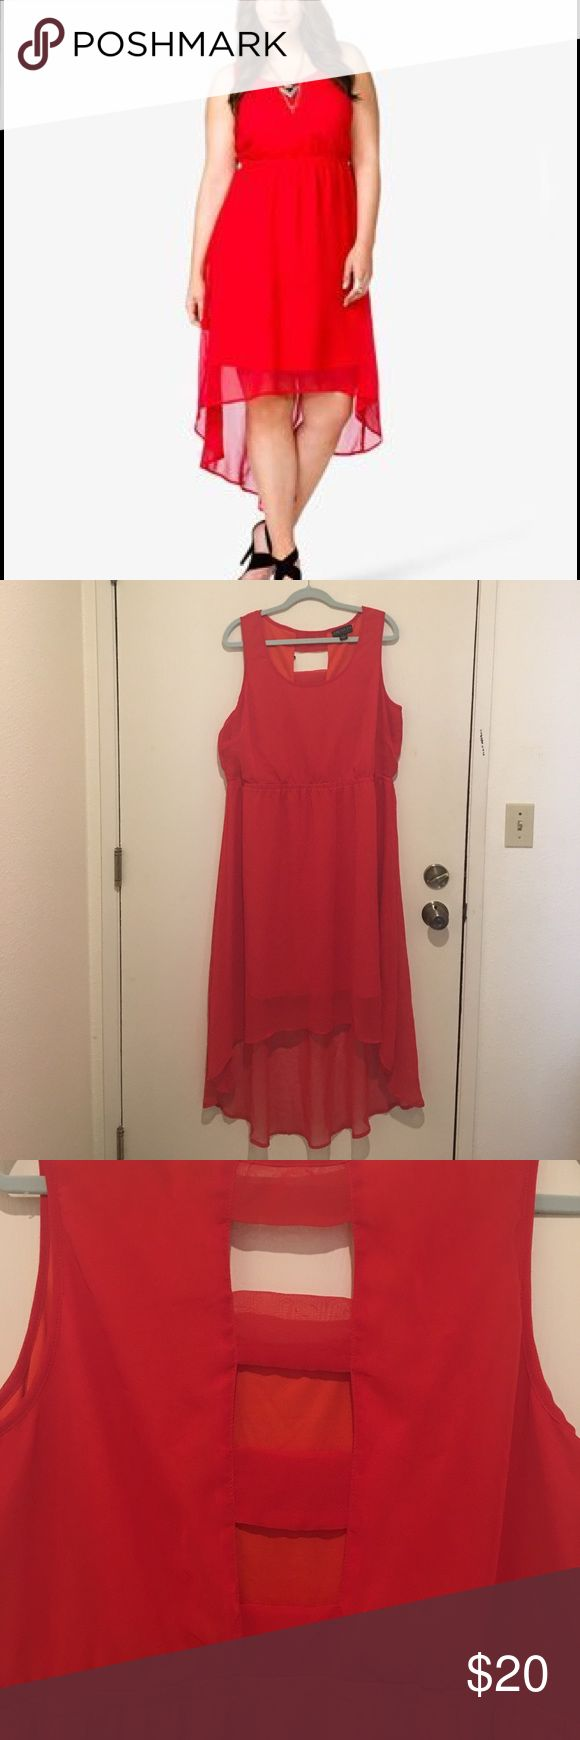 Forever 21 plus size Red High-low dress Forever 21 Plus Size Red High-low dress. Back cutouts.                           Worn once, no rips or stains. Forever 21 Dresses High Low